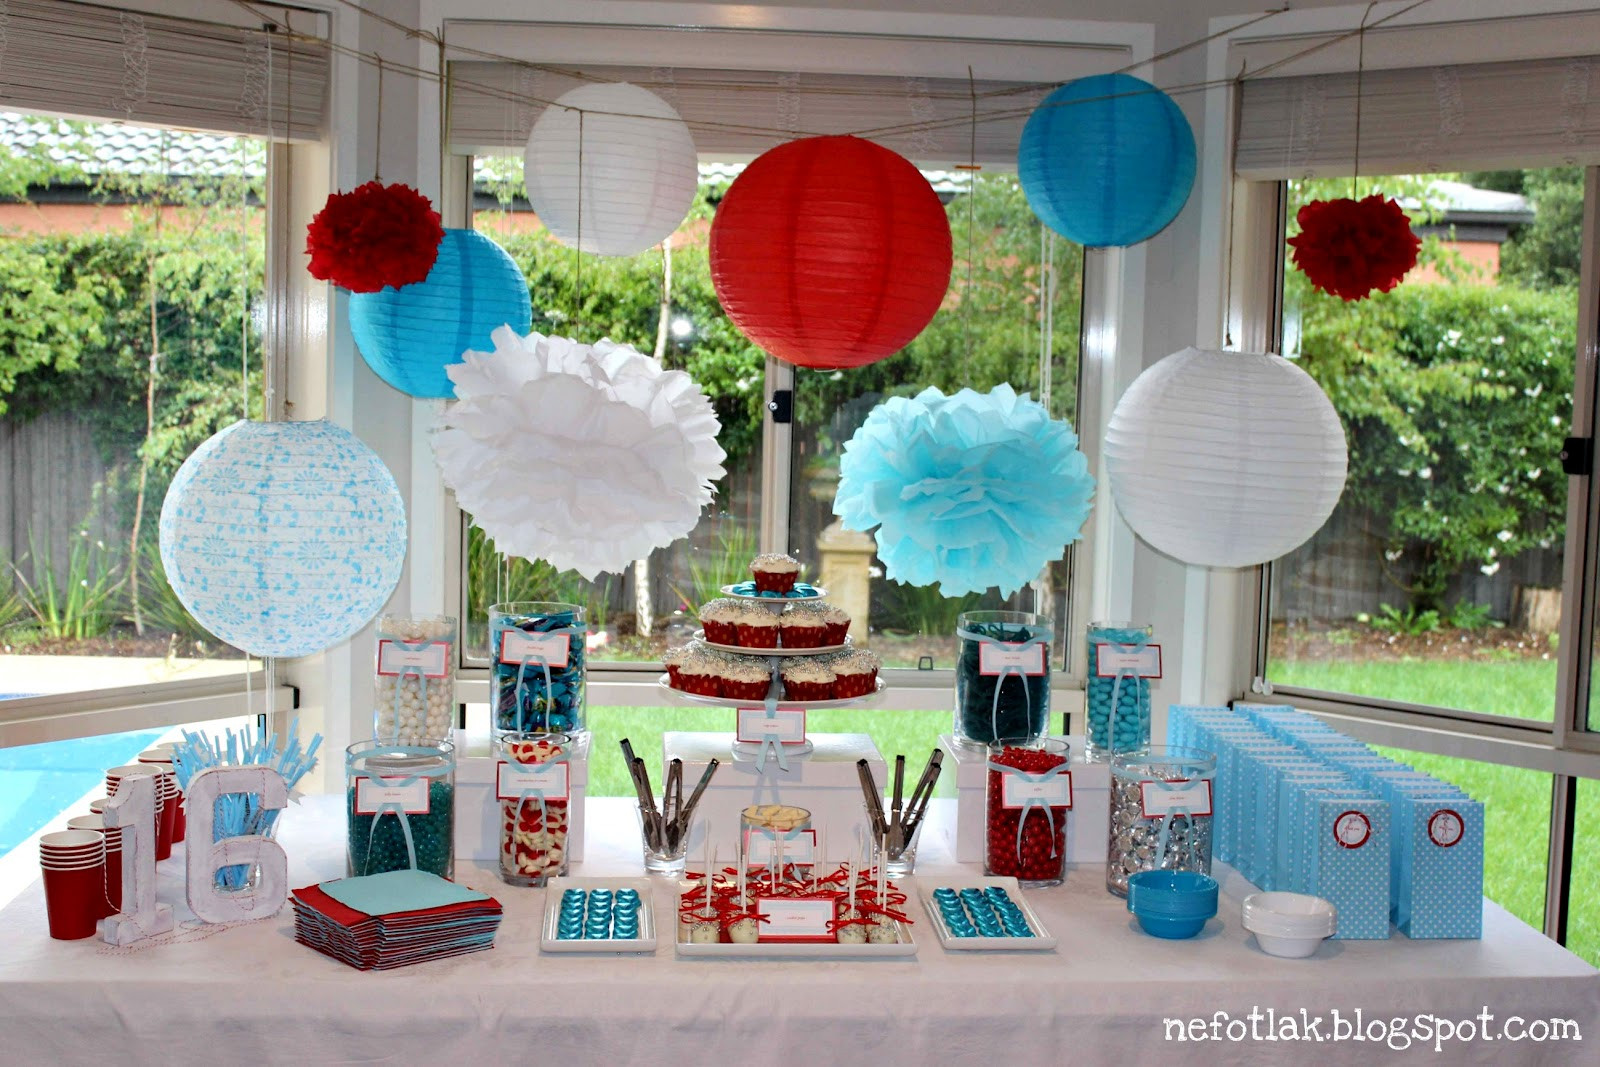 Best ideas about 16th Birthday Decorations . Save or Pin nefotlak 16th b day party candy bar dessert table Now.